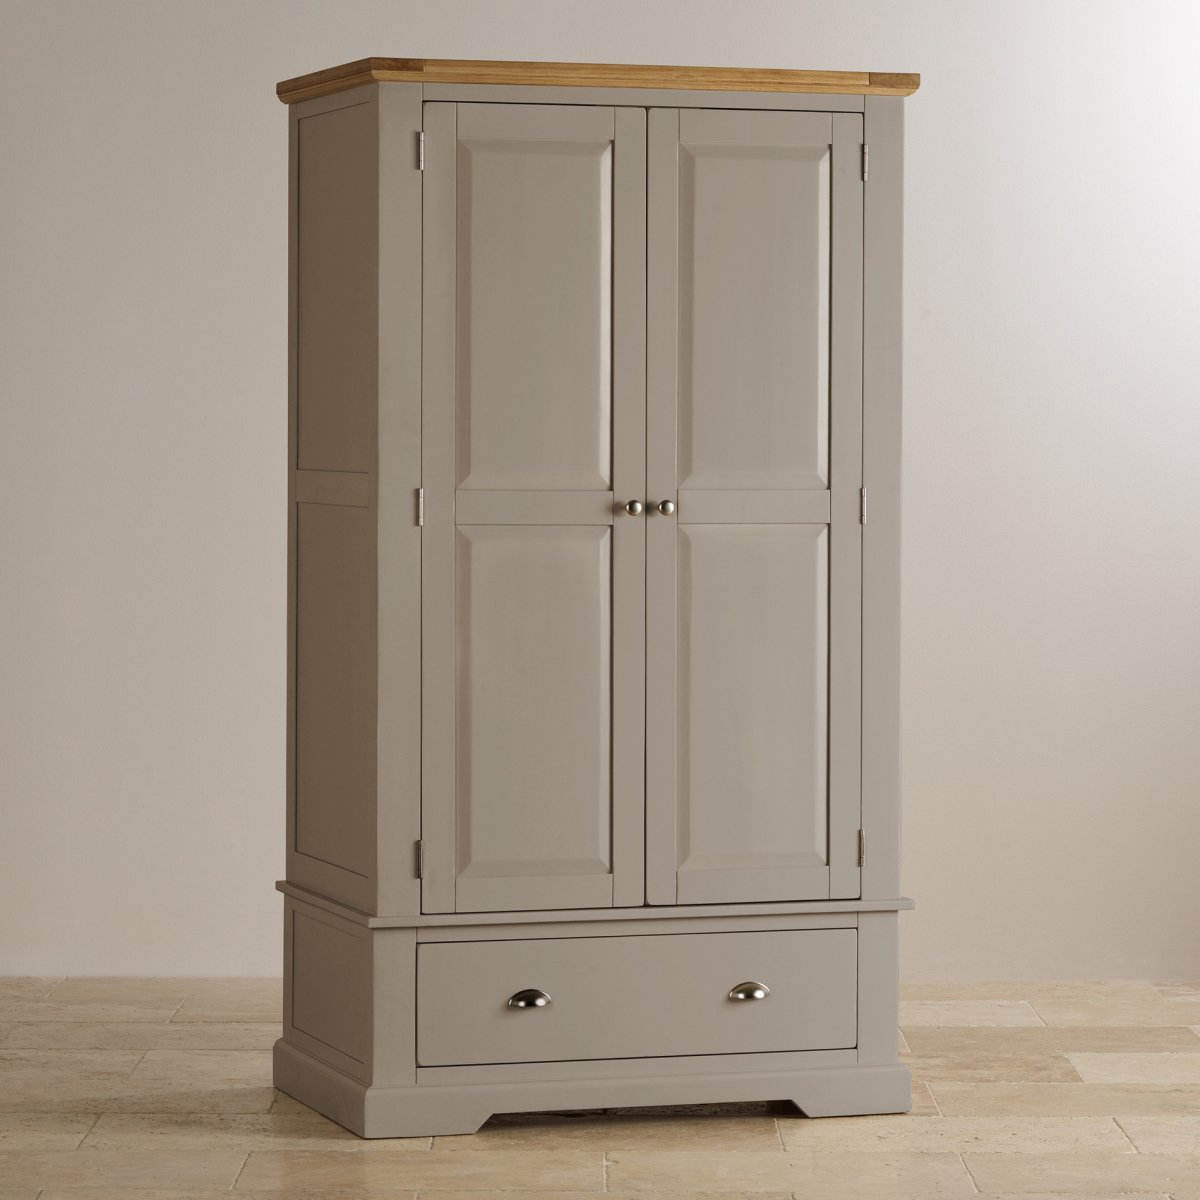 Natural oak and light grey painted double wardrobe.